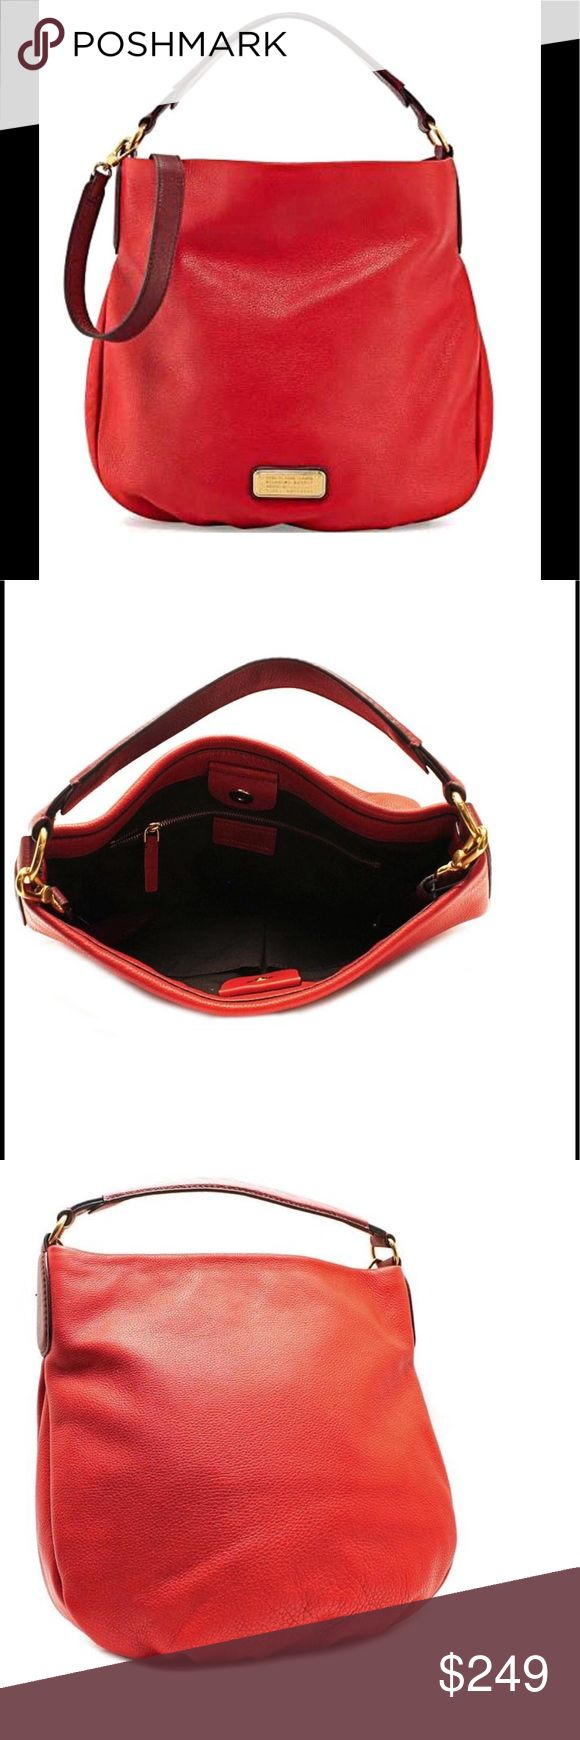 Marc By Marc Jacobs Q Hillier Hobo bag red Please see product features in photos Color: rosy red multi  Only used once in excellent condition! Marc By Marc Jacobs Bags Hobos